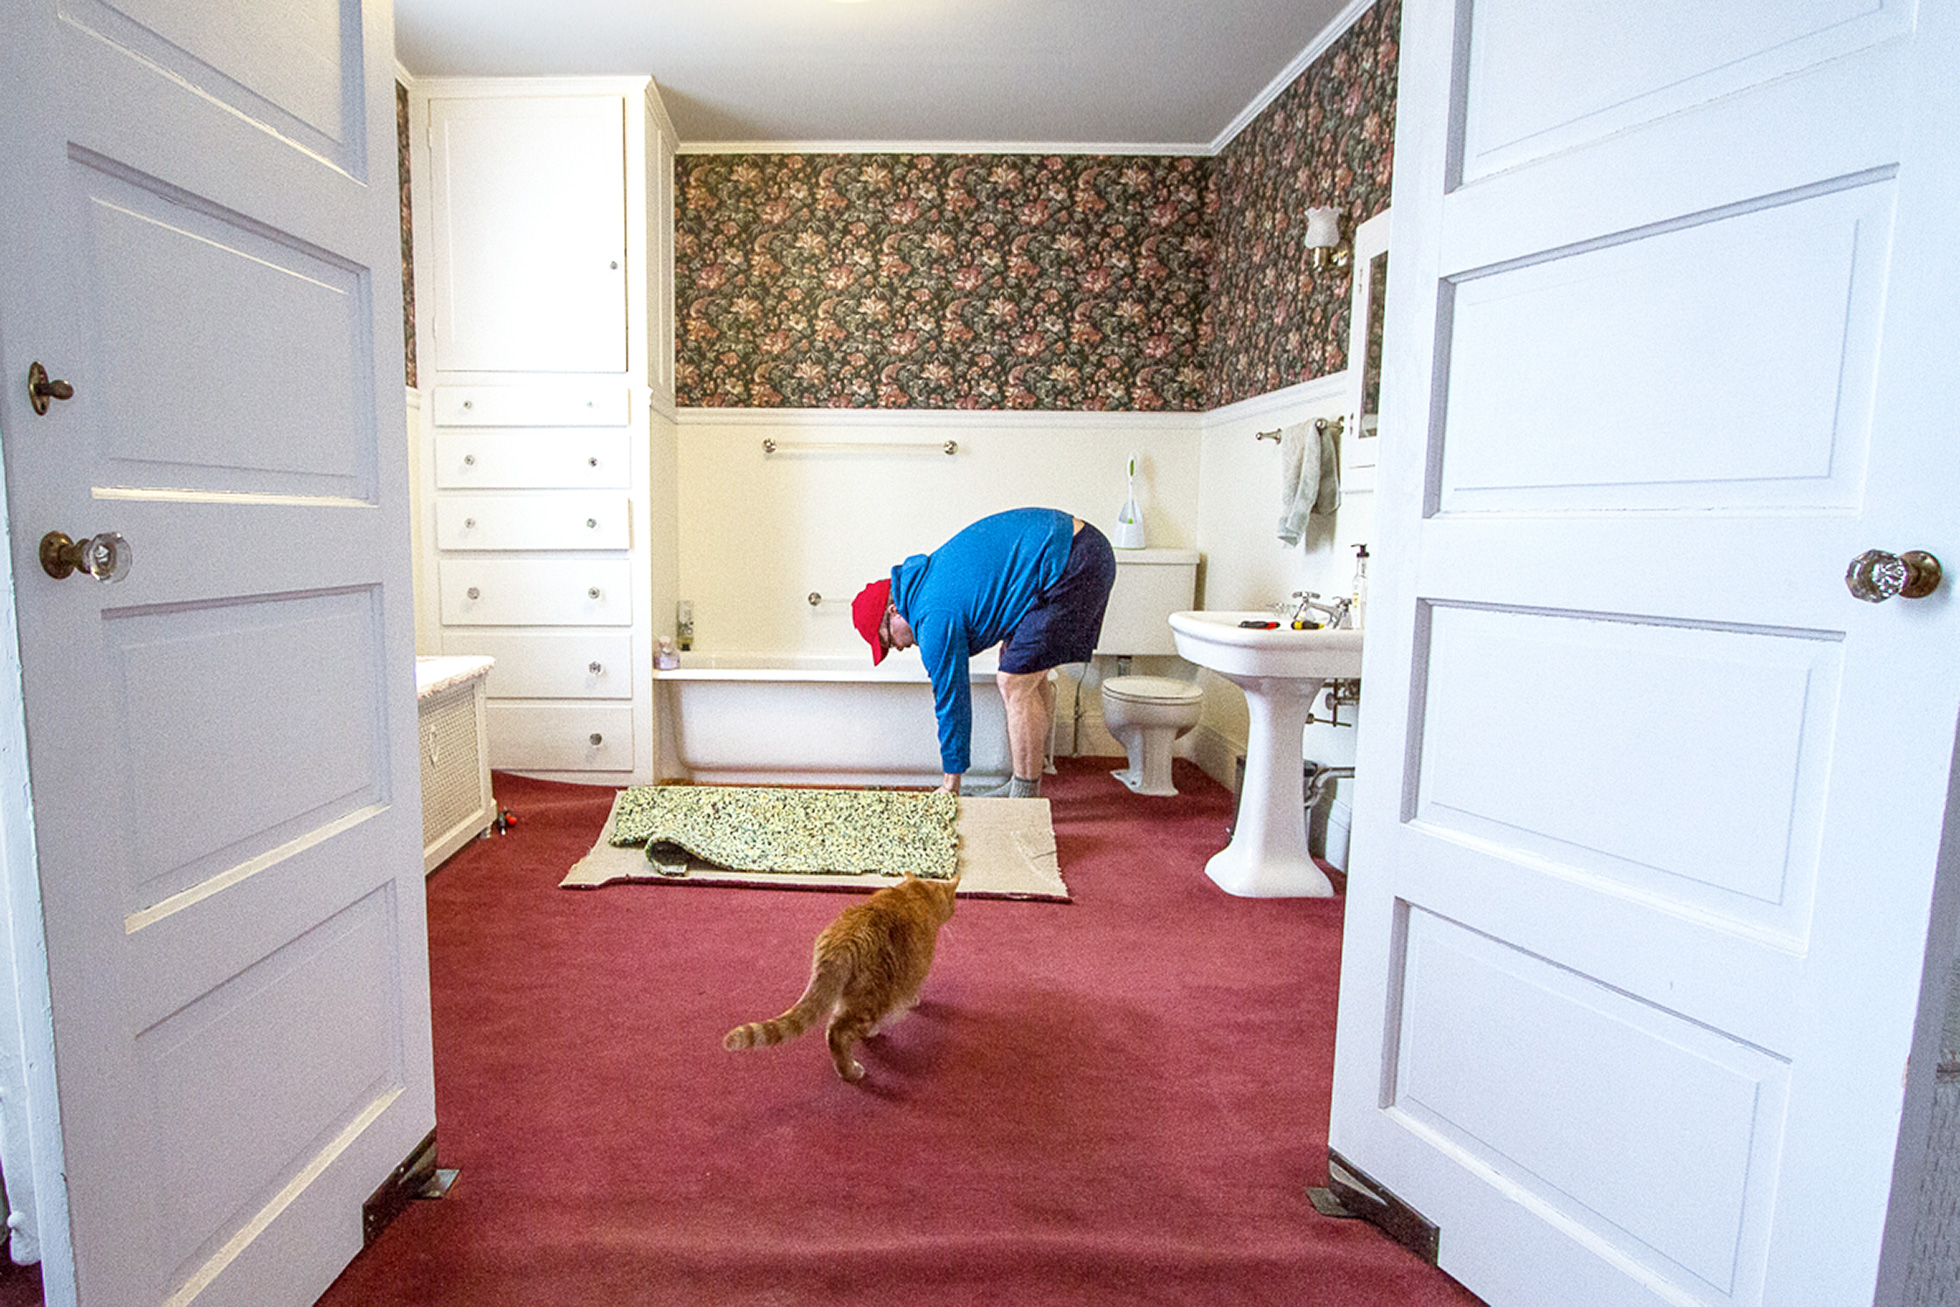 Man removing carpet from a home bathroom